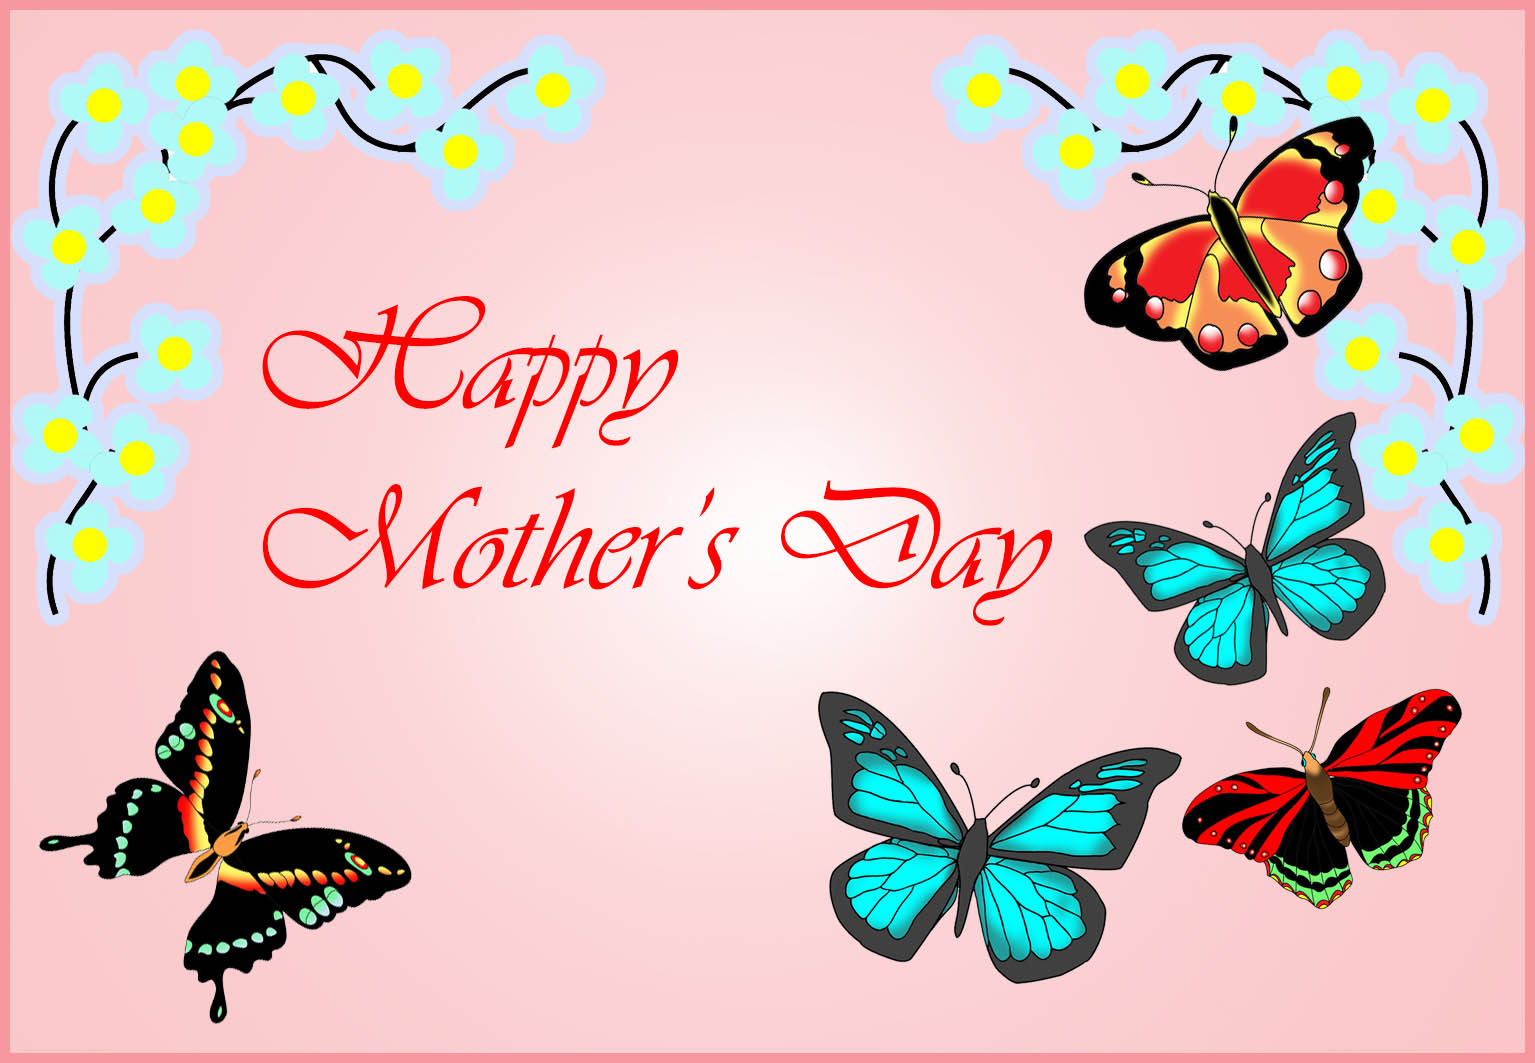 17 free mothers day cards and ideas for small homemade gifts free mothers day card with butterflies and flowers kristyandbryce Image collections